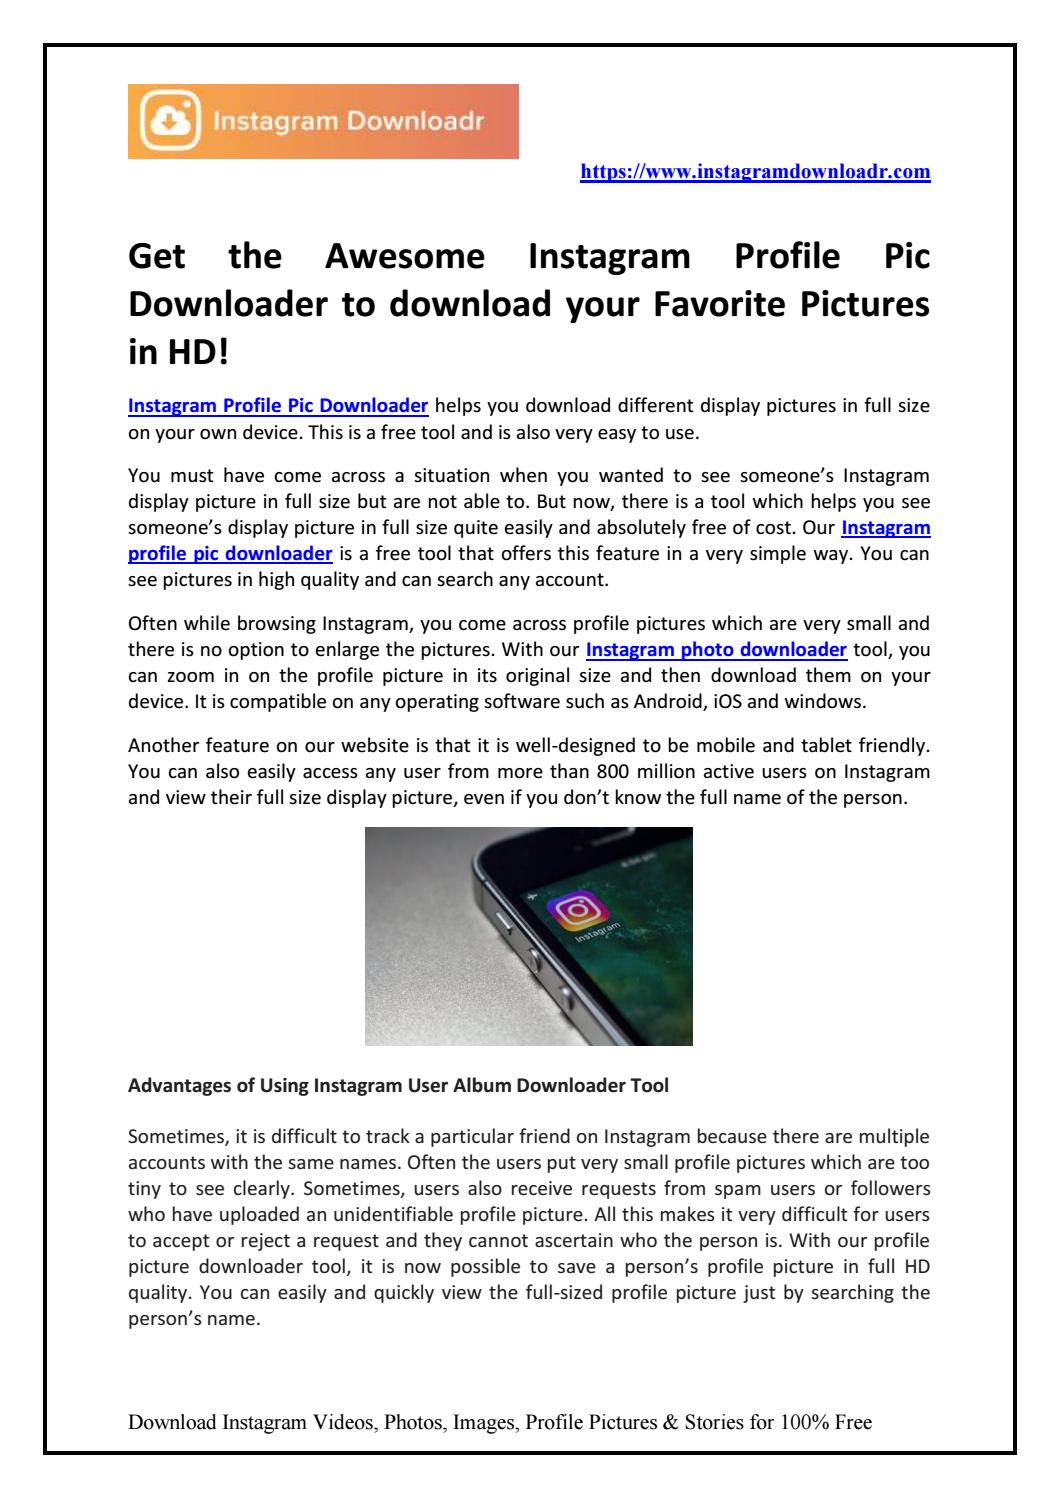 Get the Awesome Instagram Profile Pic Downloader to download